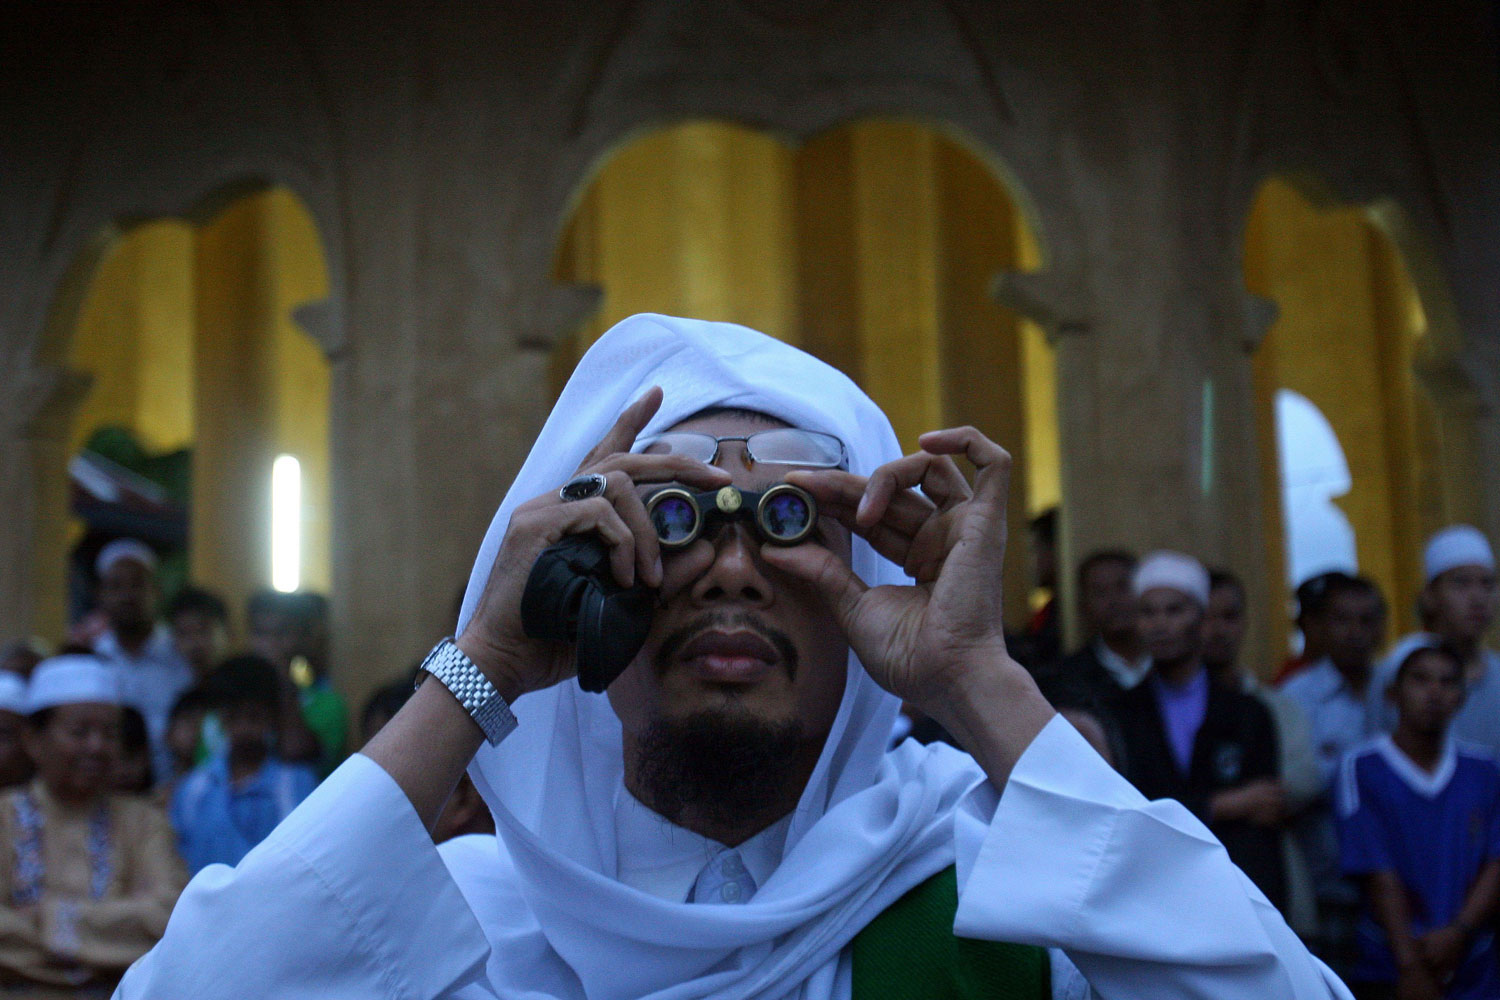 August 29, 2011. A Muslim man uses binoculars to search for the moon in Thailand's Yala province. The appearance of the new moon marks the end of fasting and spiritual cleansing during the Islamic holy month of Ramadan and the start of a three-day celebration known as 'Id al-Fitr, the Breaking of the Fast.